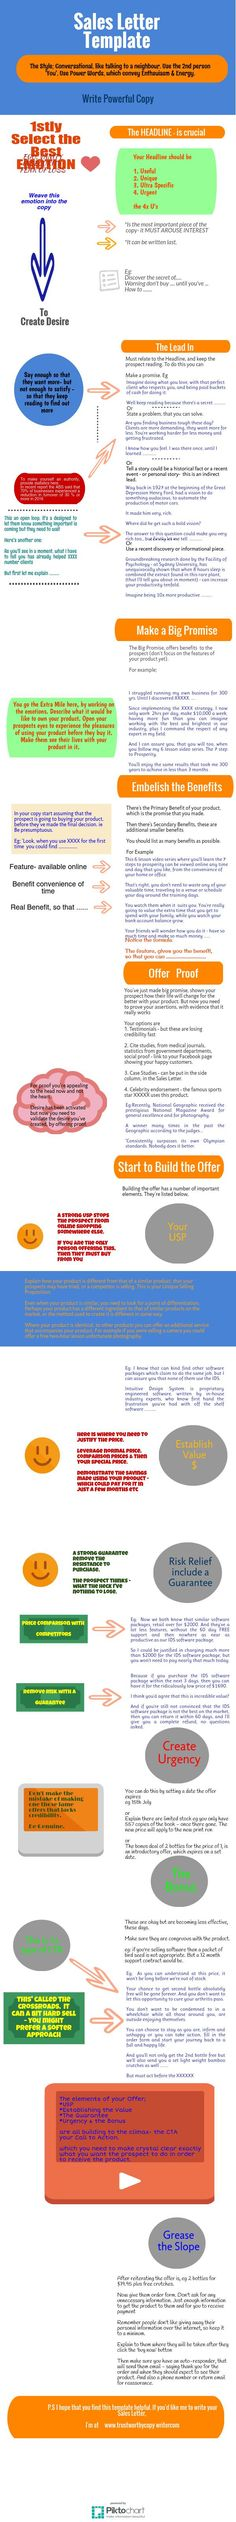 Sales Letter Template  | @Piktochart Infographic